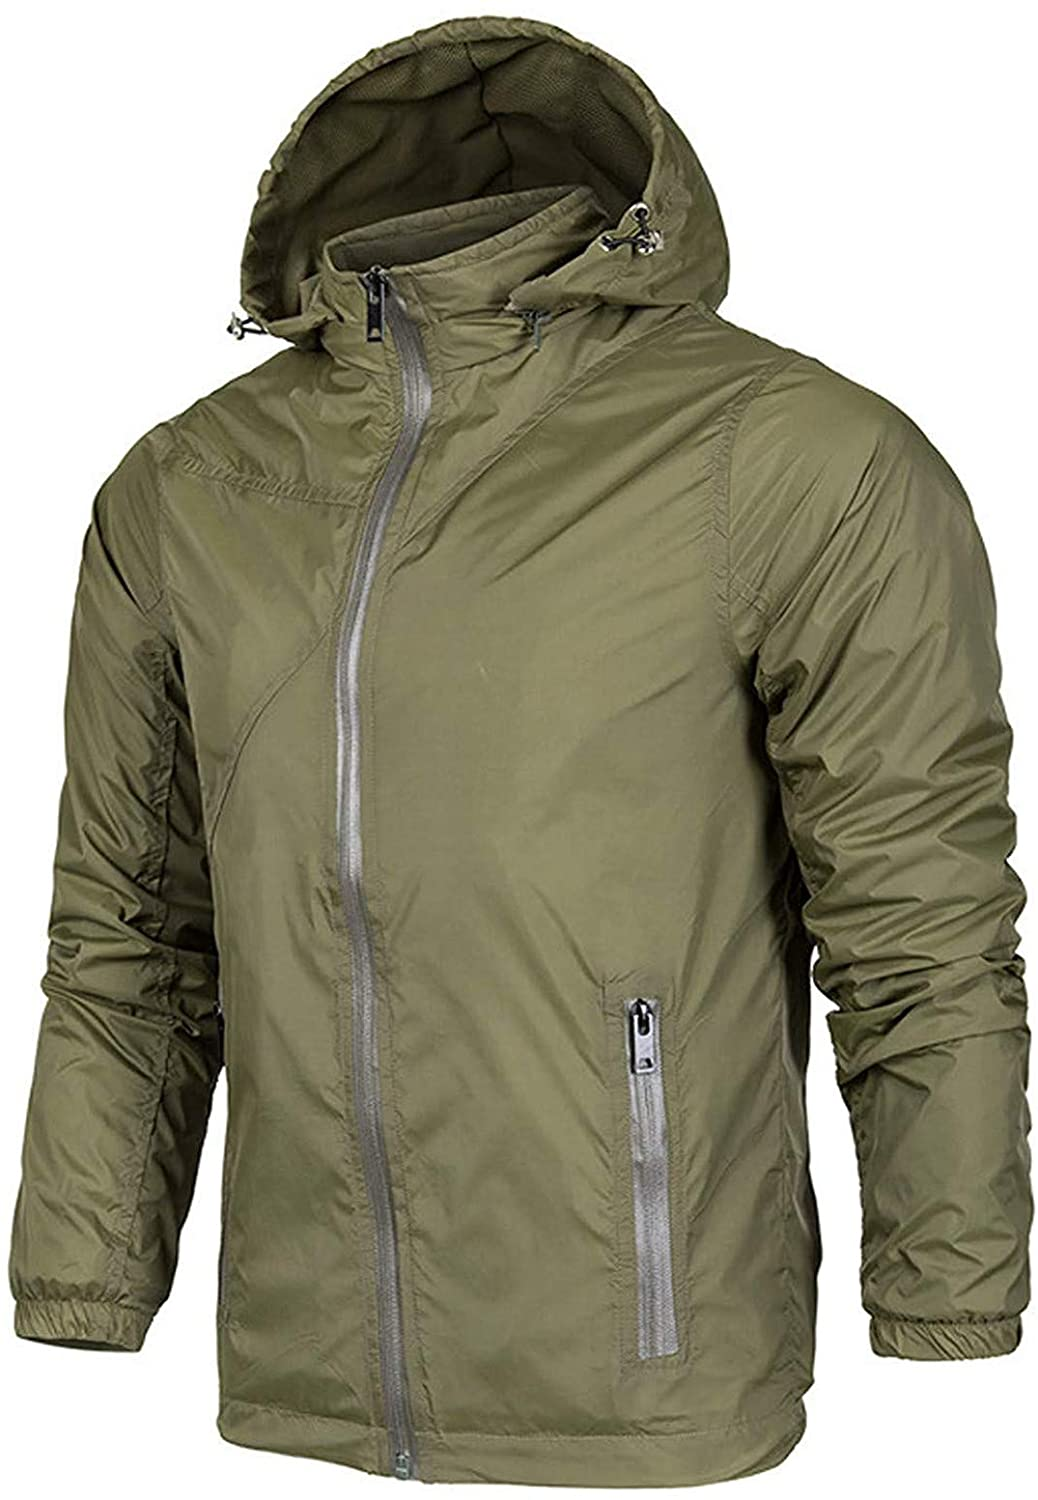 Men's Classic Hooded Waterproof Zipper Lightweight Shell Hiking Rain Jacket